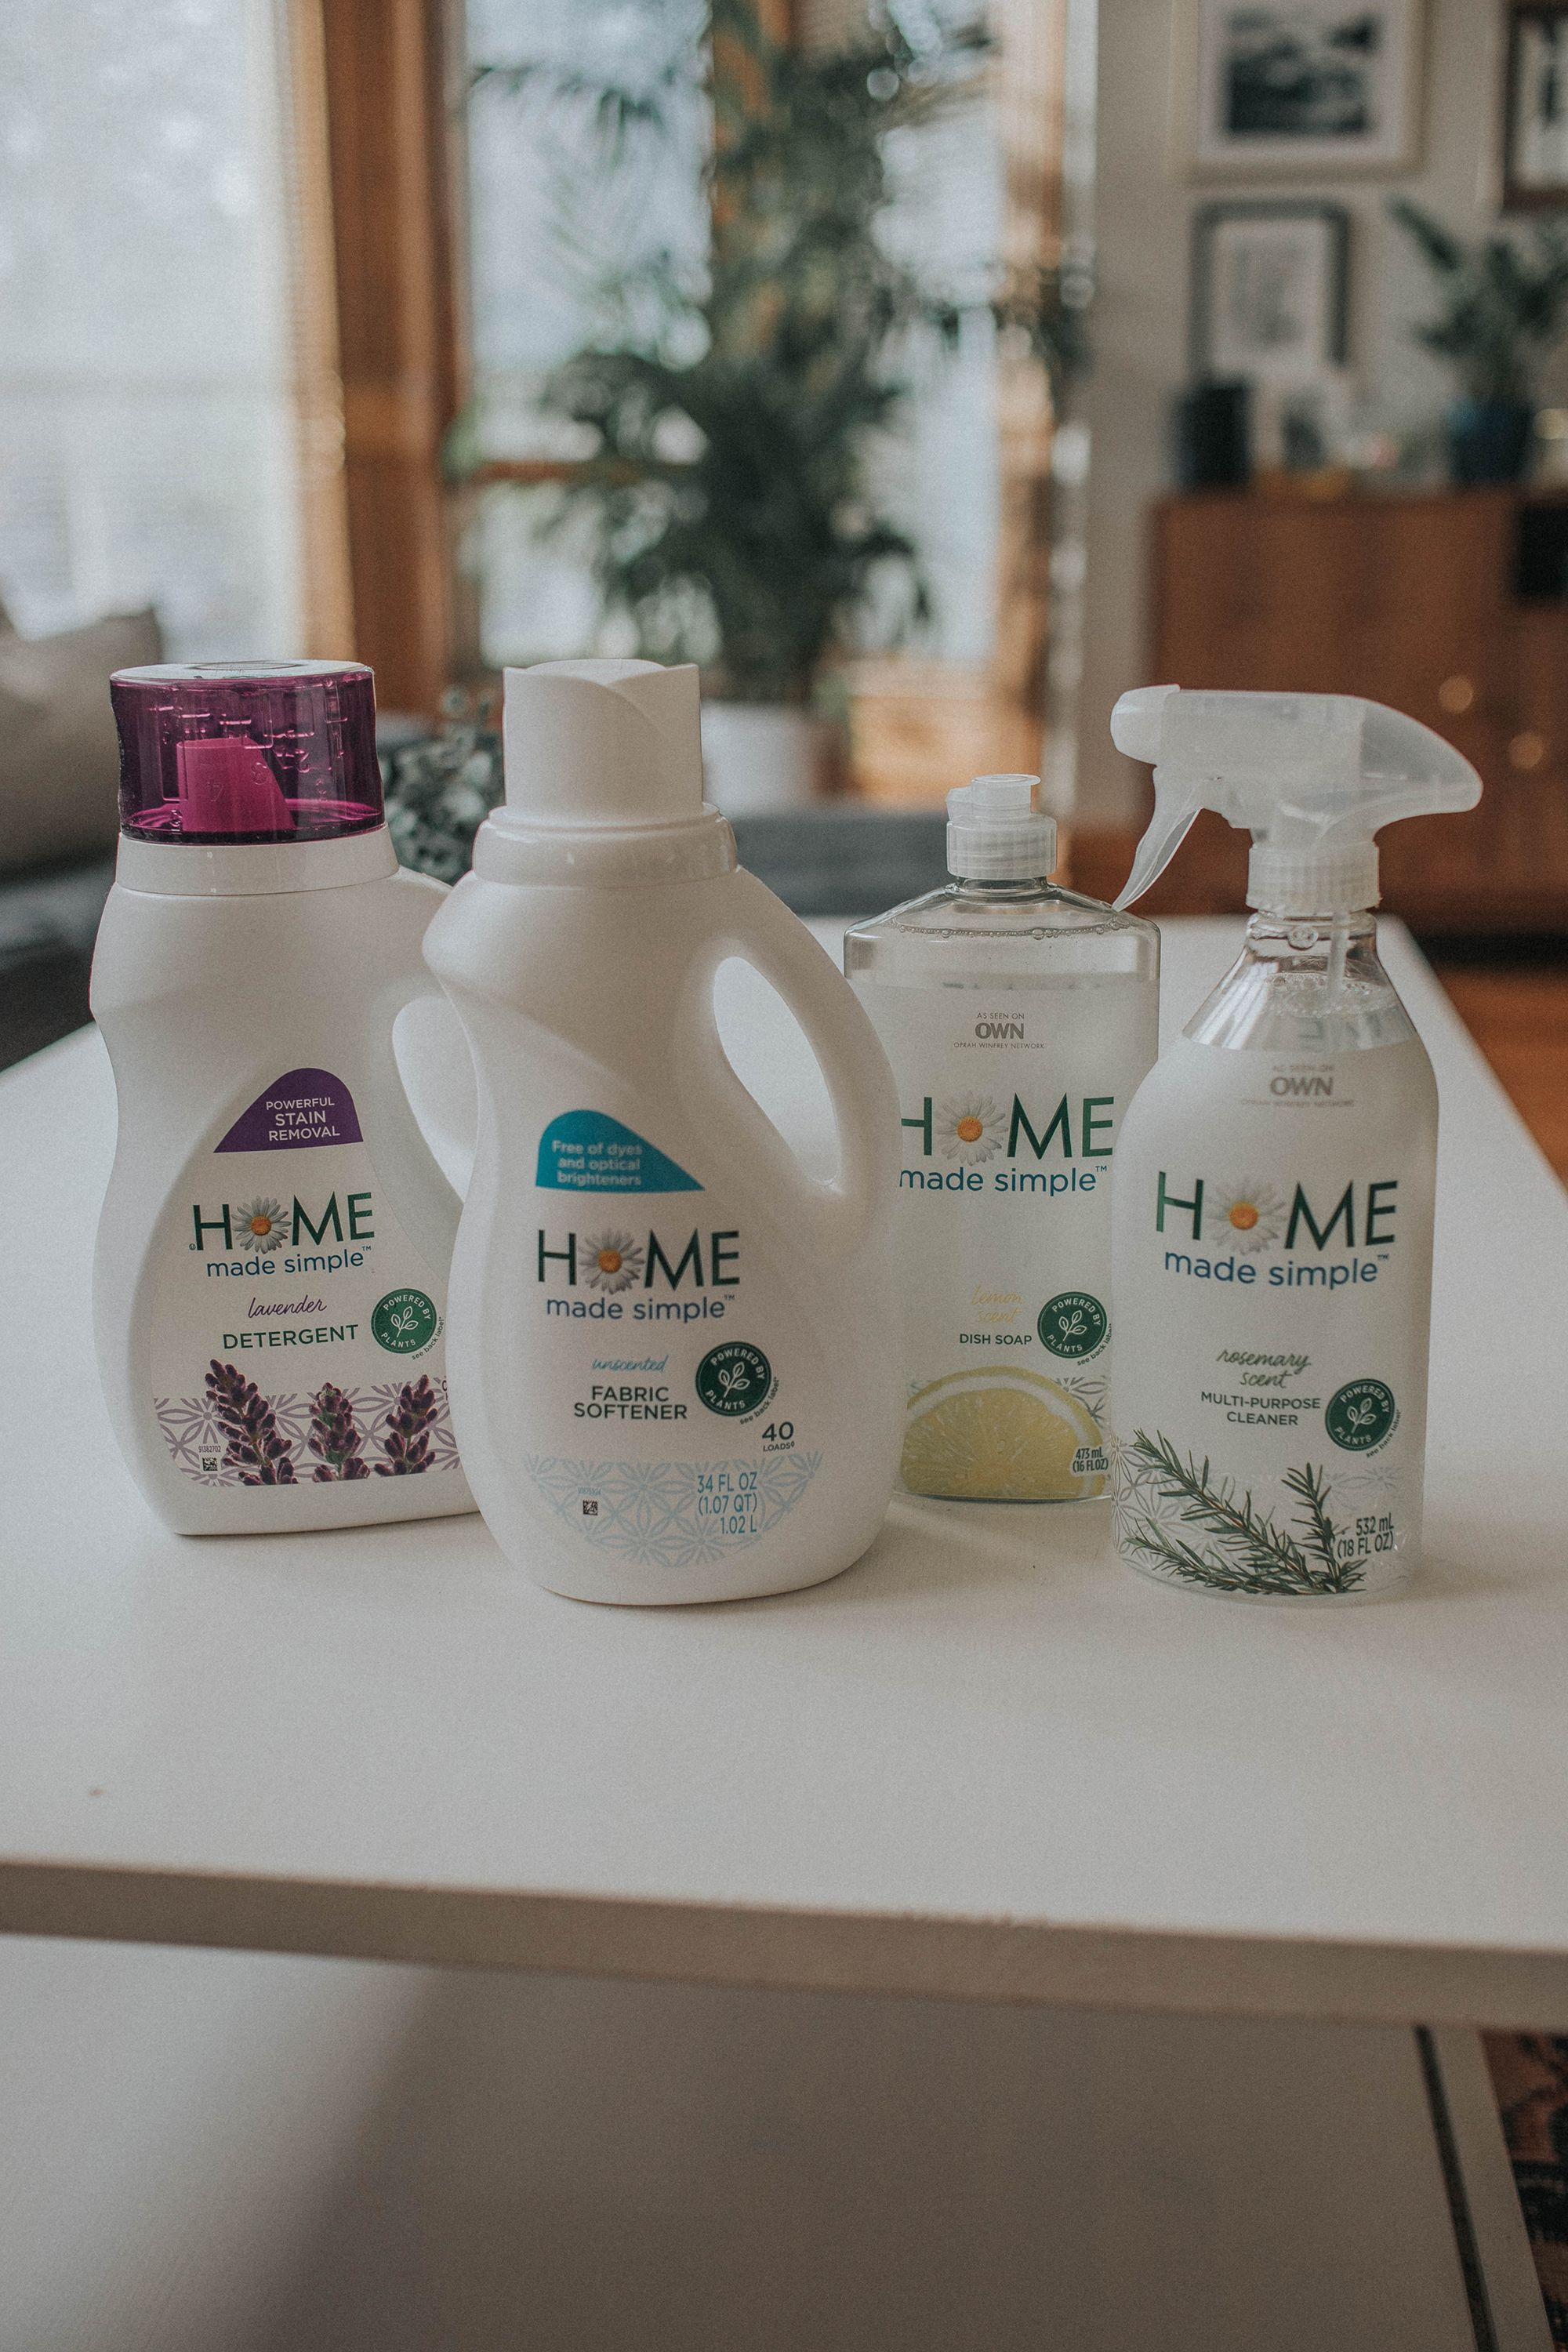 Loving This Home Made Simple Collection For Keeping My Home Clean